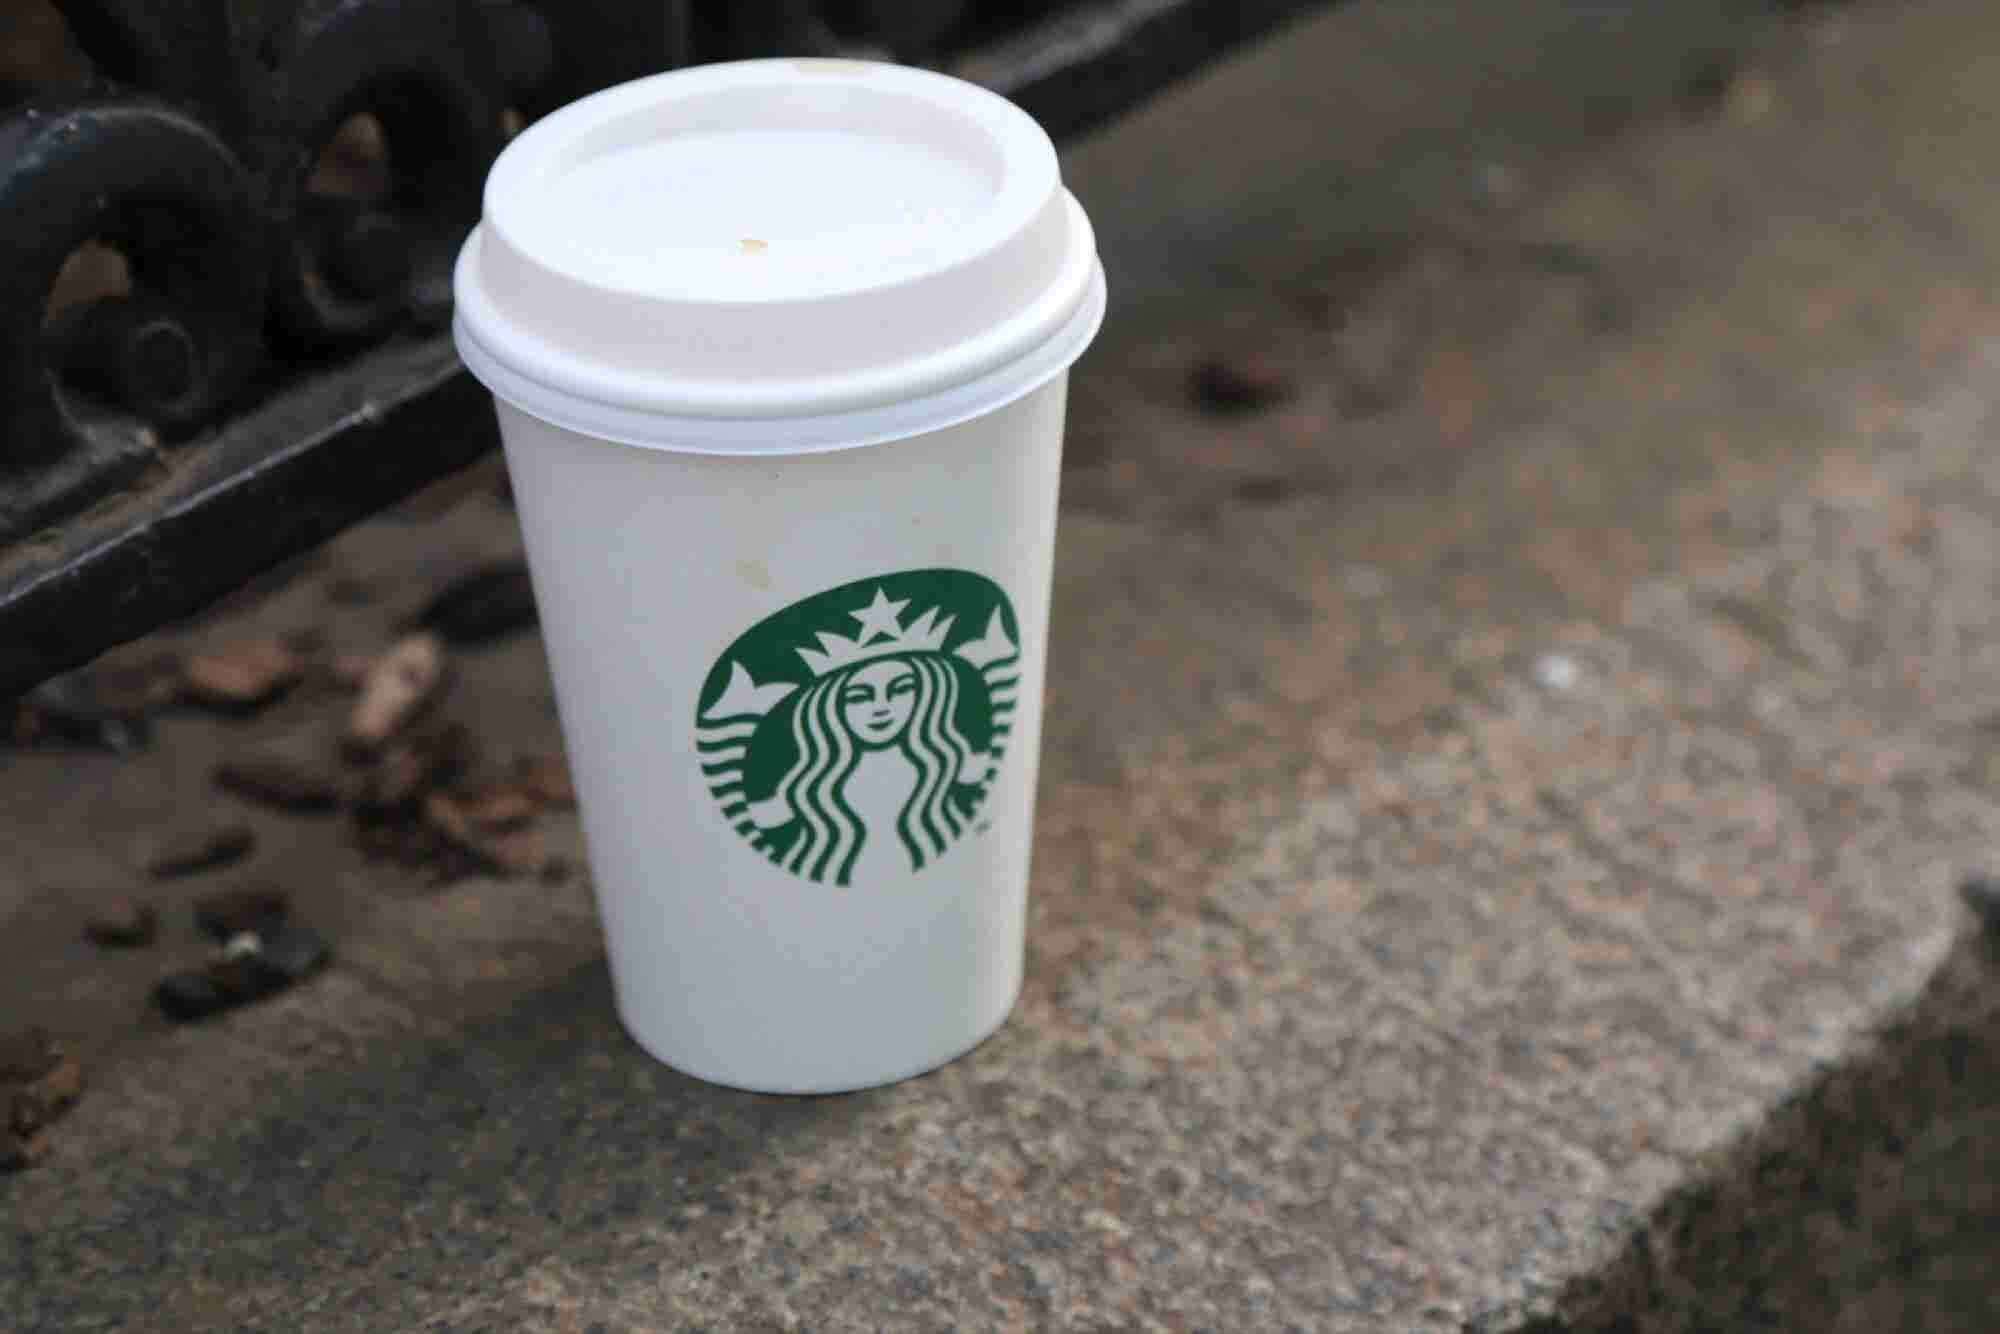 Starbucks Whips Up New Drink for Its Menu